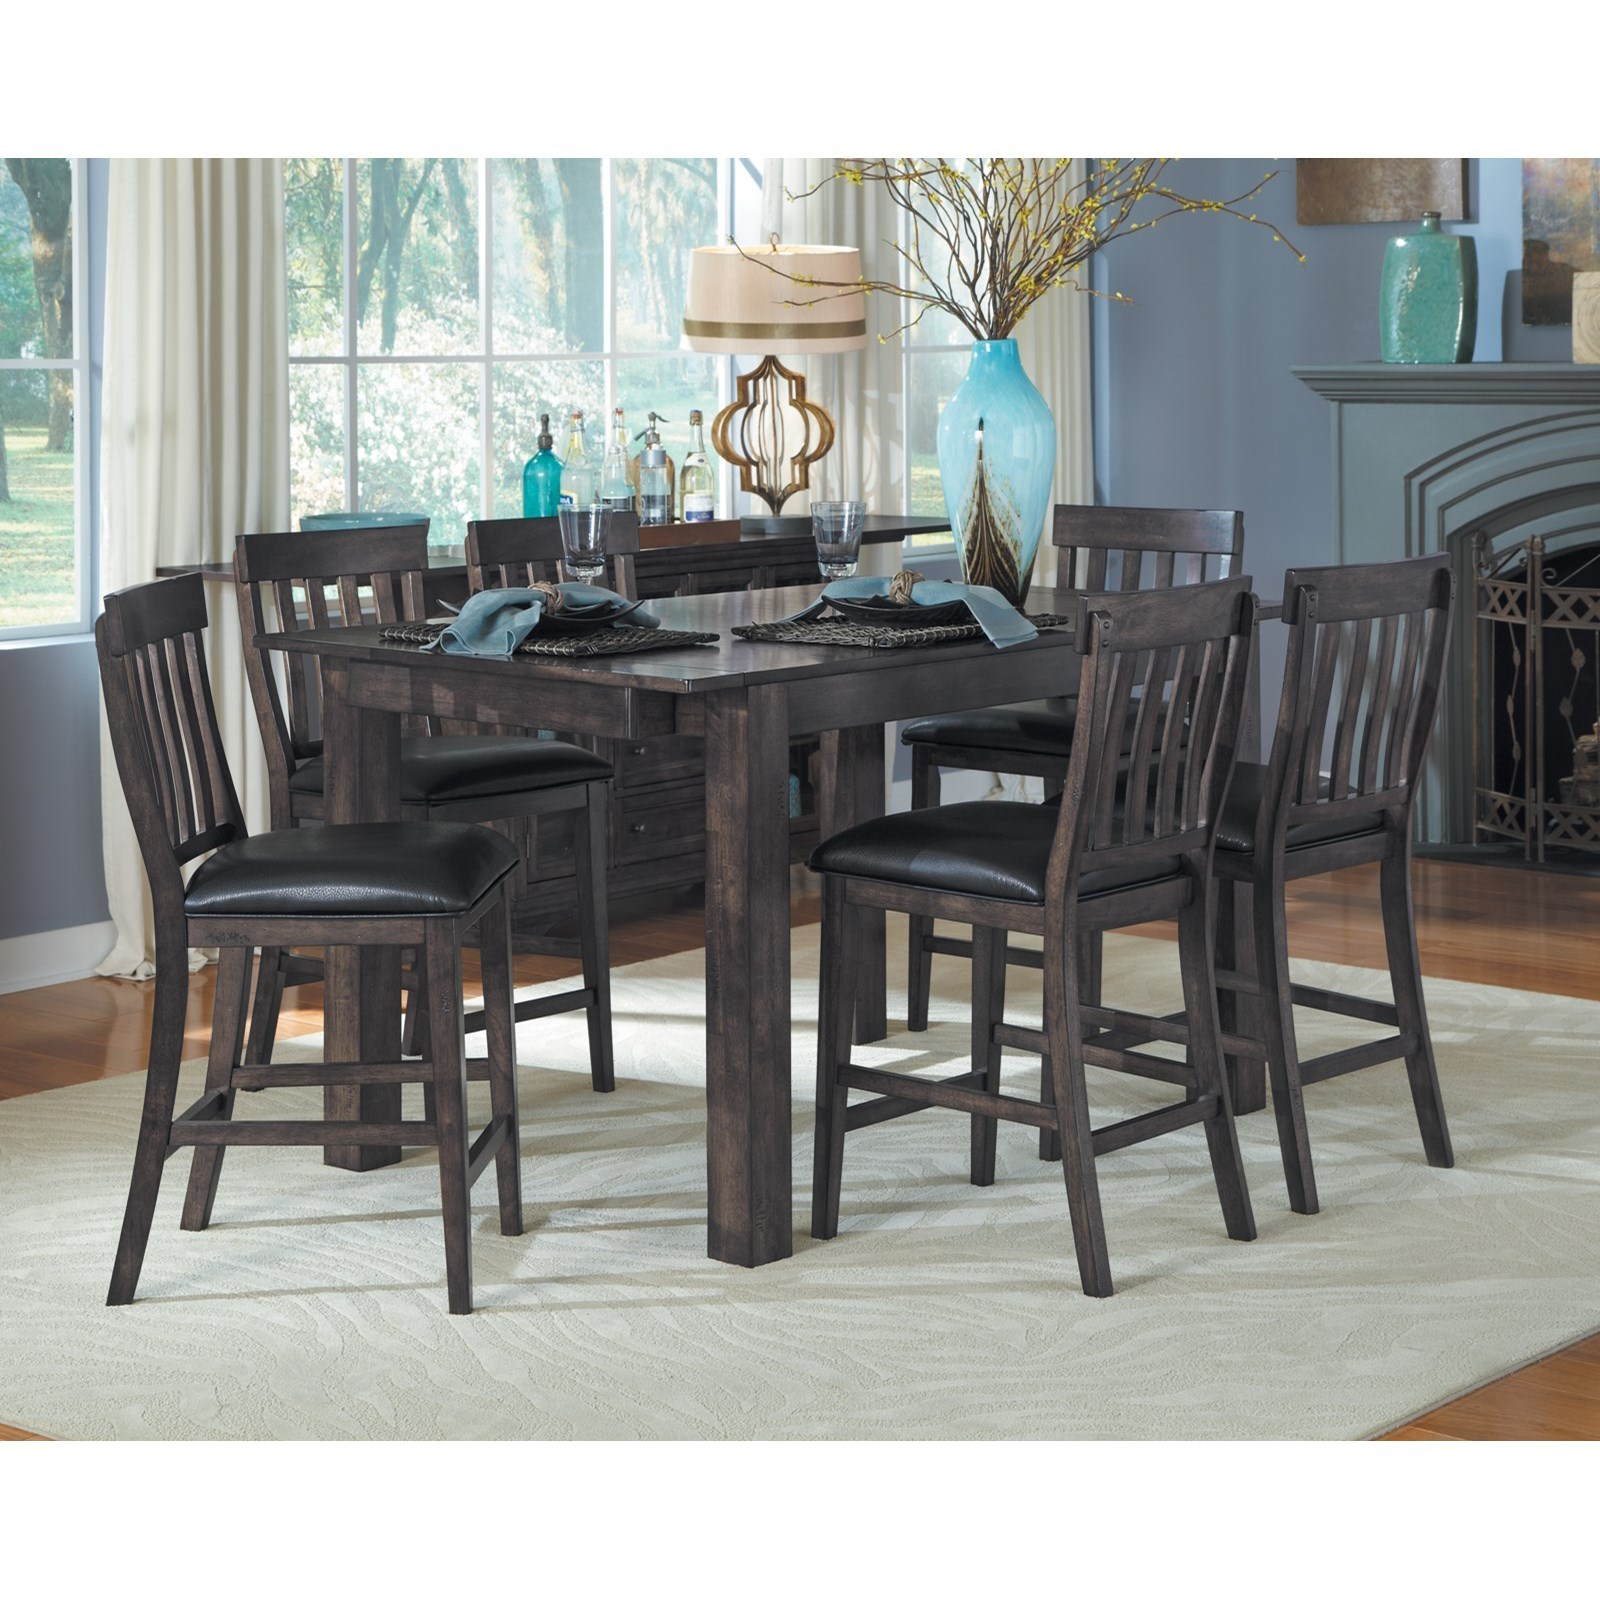 Mariposa 7 Piece Table and Chairs Set  by A-A at Walker's Furniture